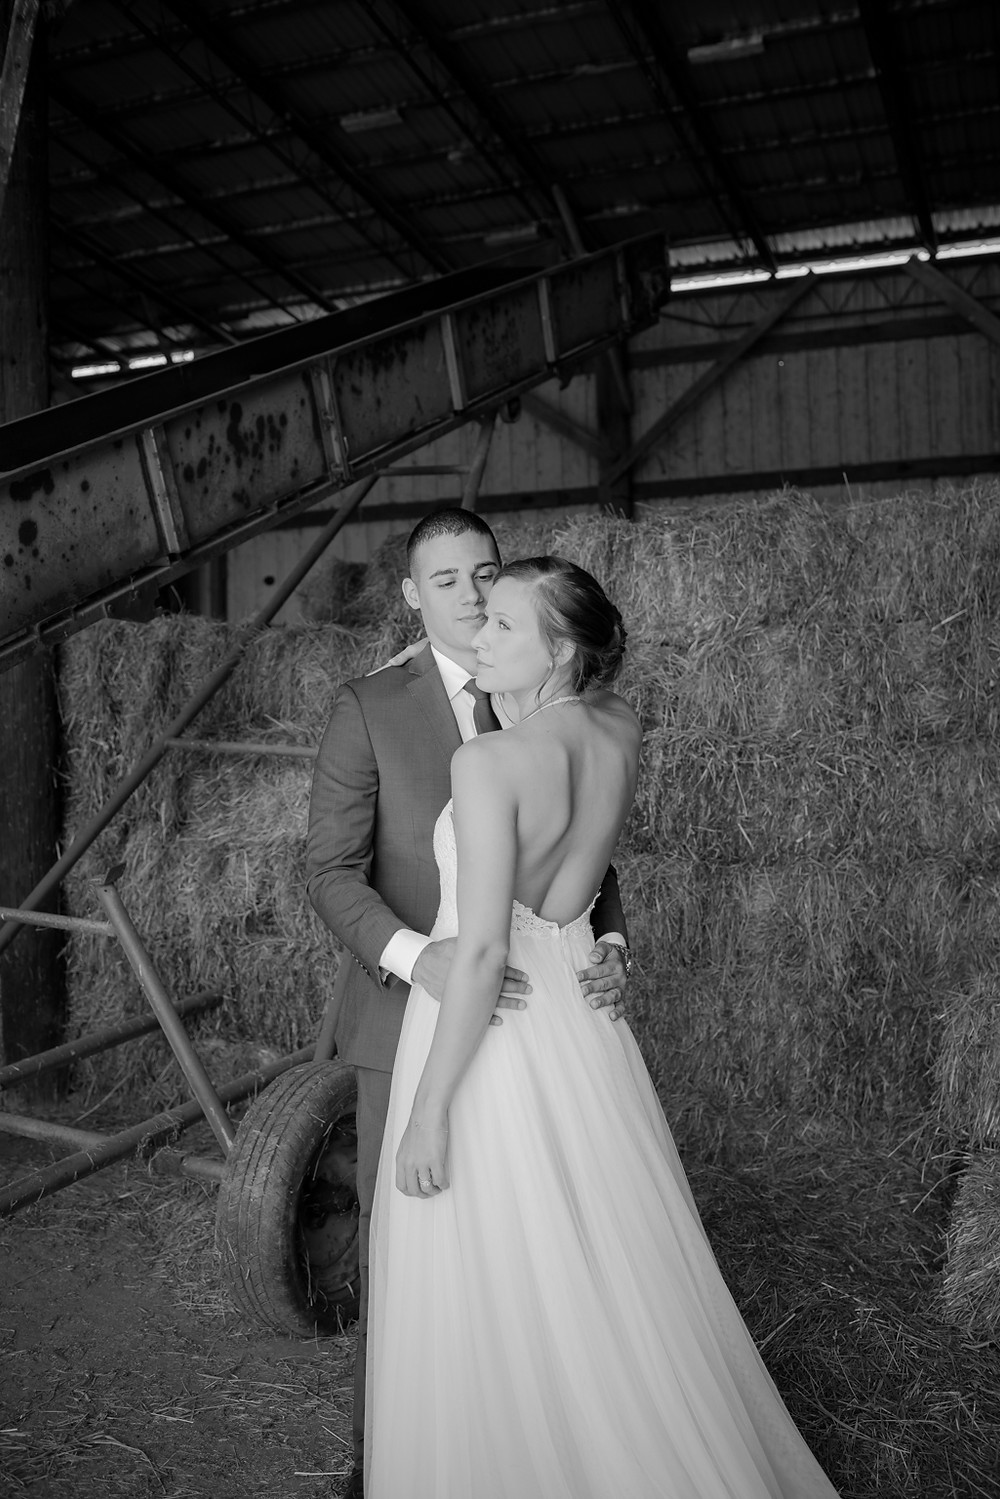 Jacqueline Binkley Photography - The Barns at Maple Valley Farm LLC Industrial Wedding